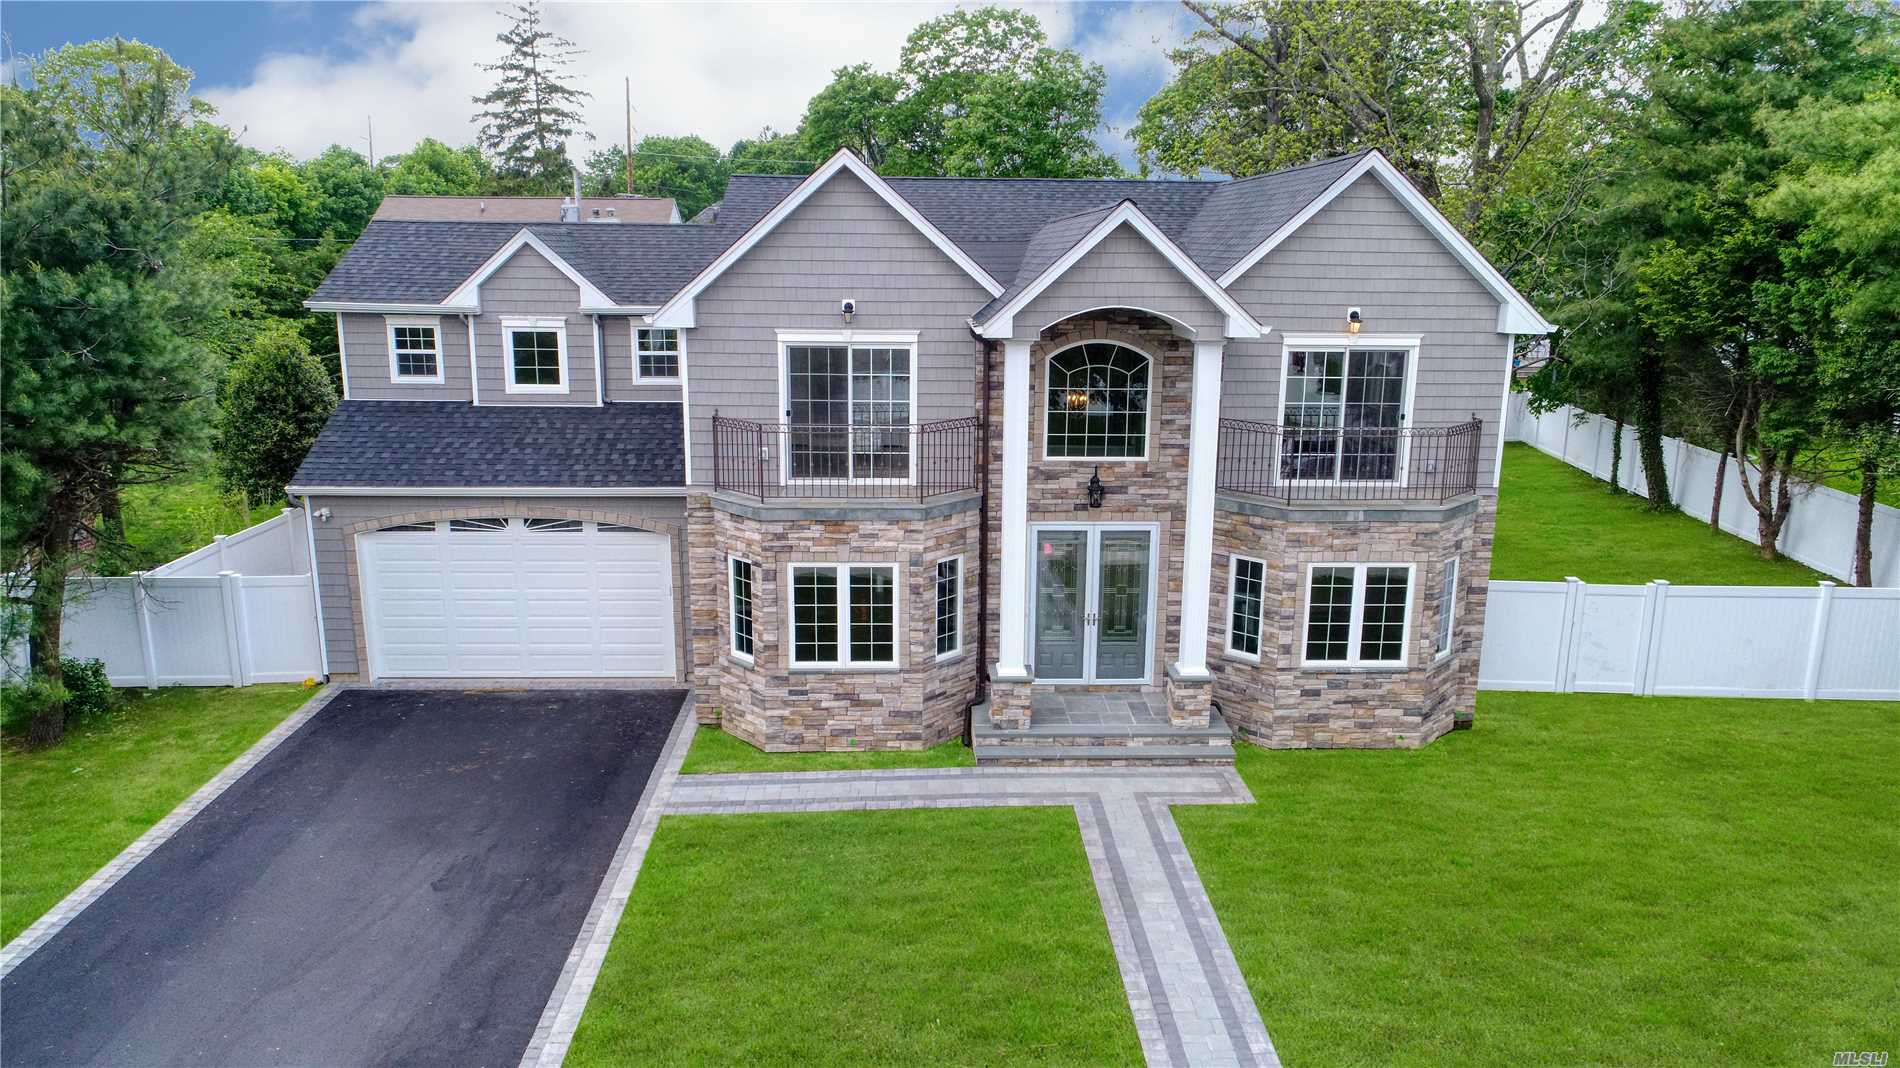 Photo of home for sale at 43 Narcissus Dr, Syosset NY